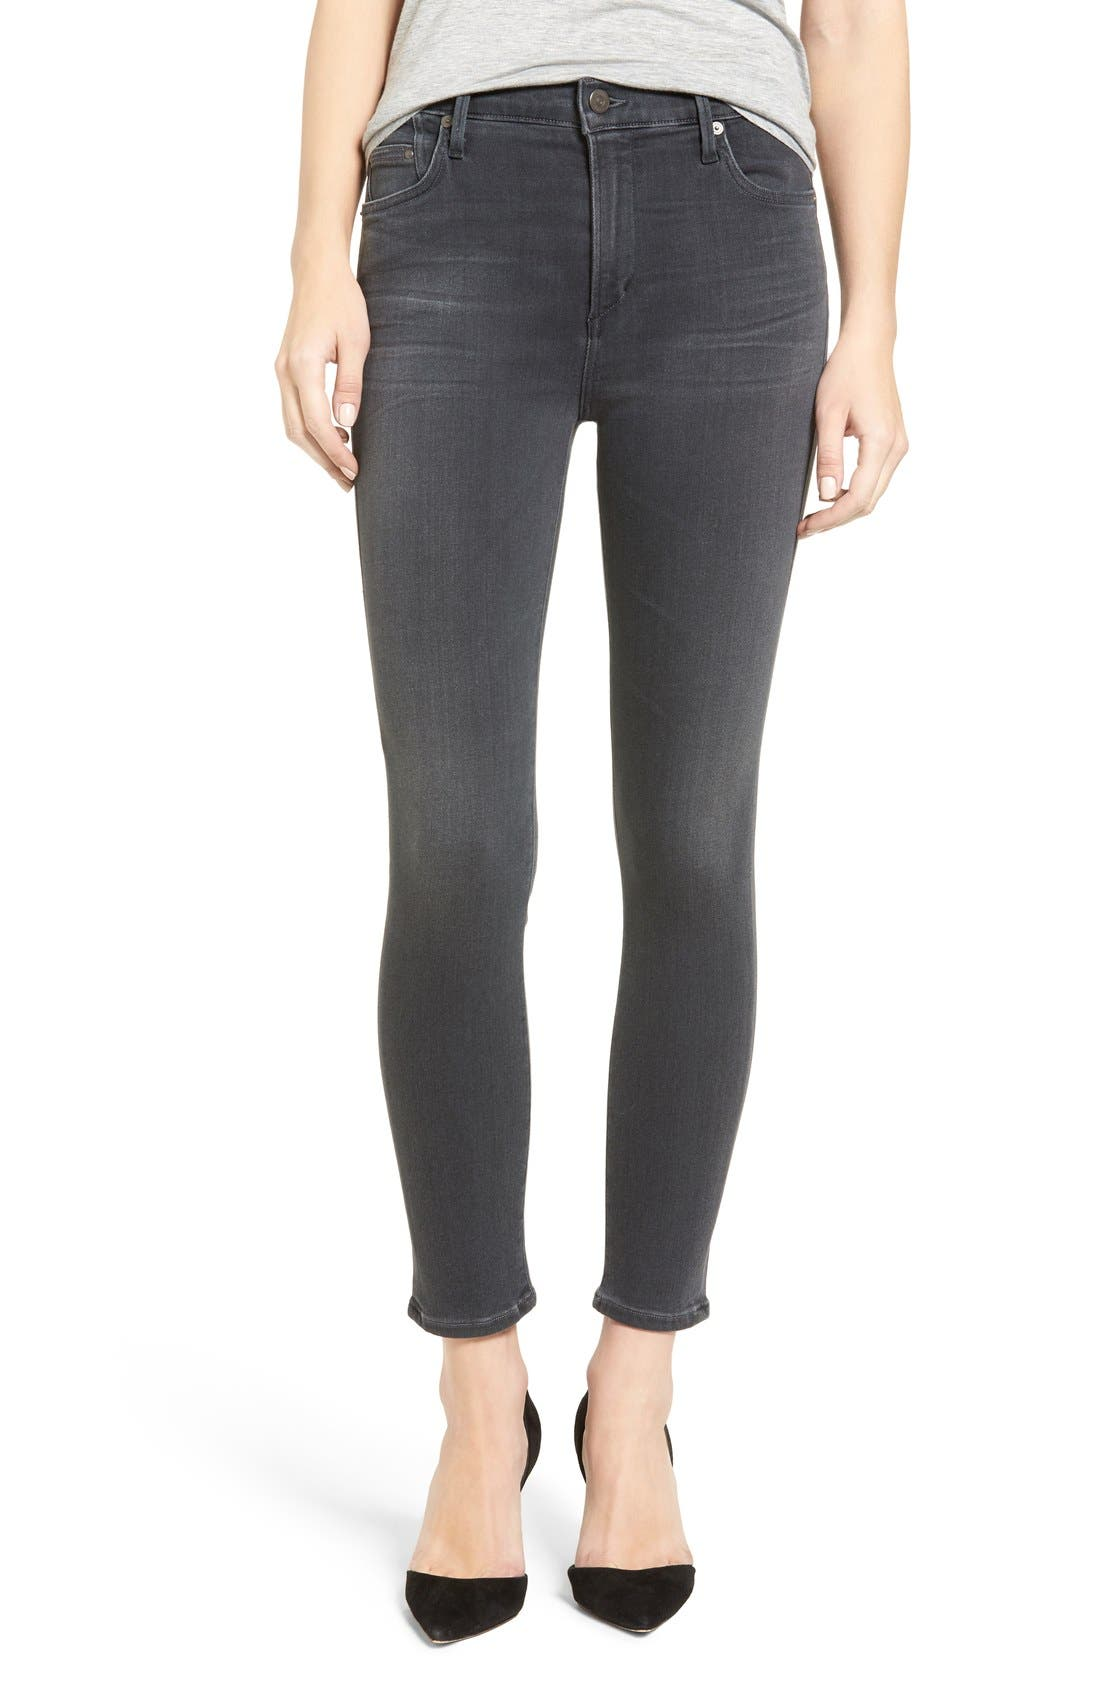 Alternate Image 1 Selected - Citizens of Humanity Rocket High Waist Crop Skinny Jeans (Chateau)